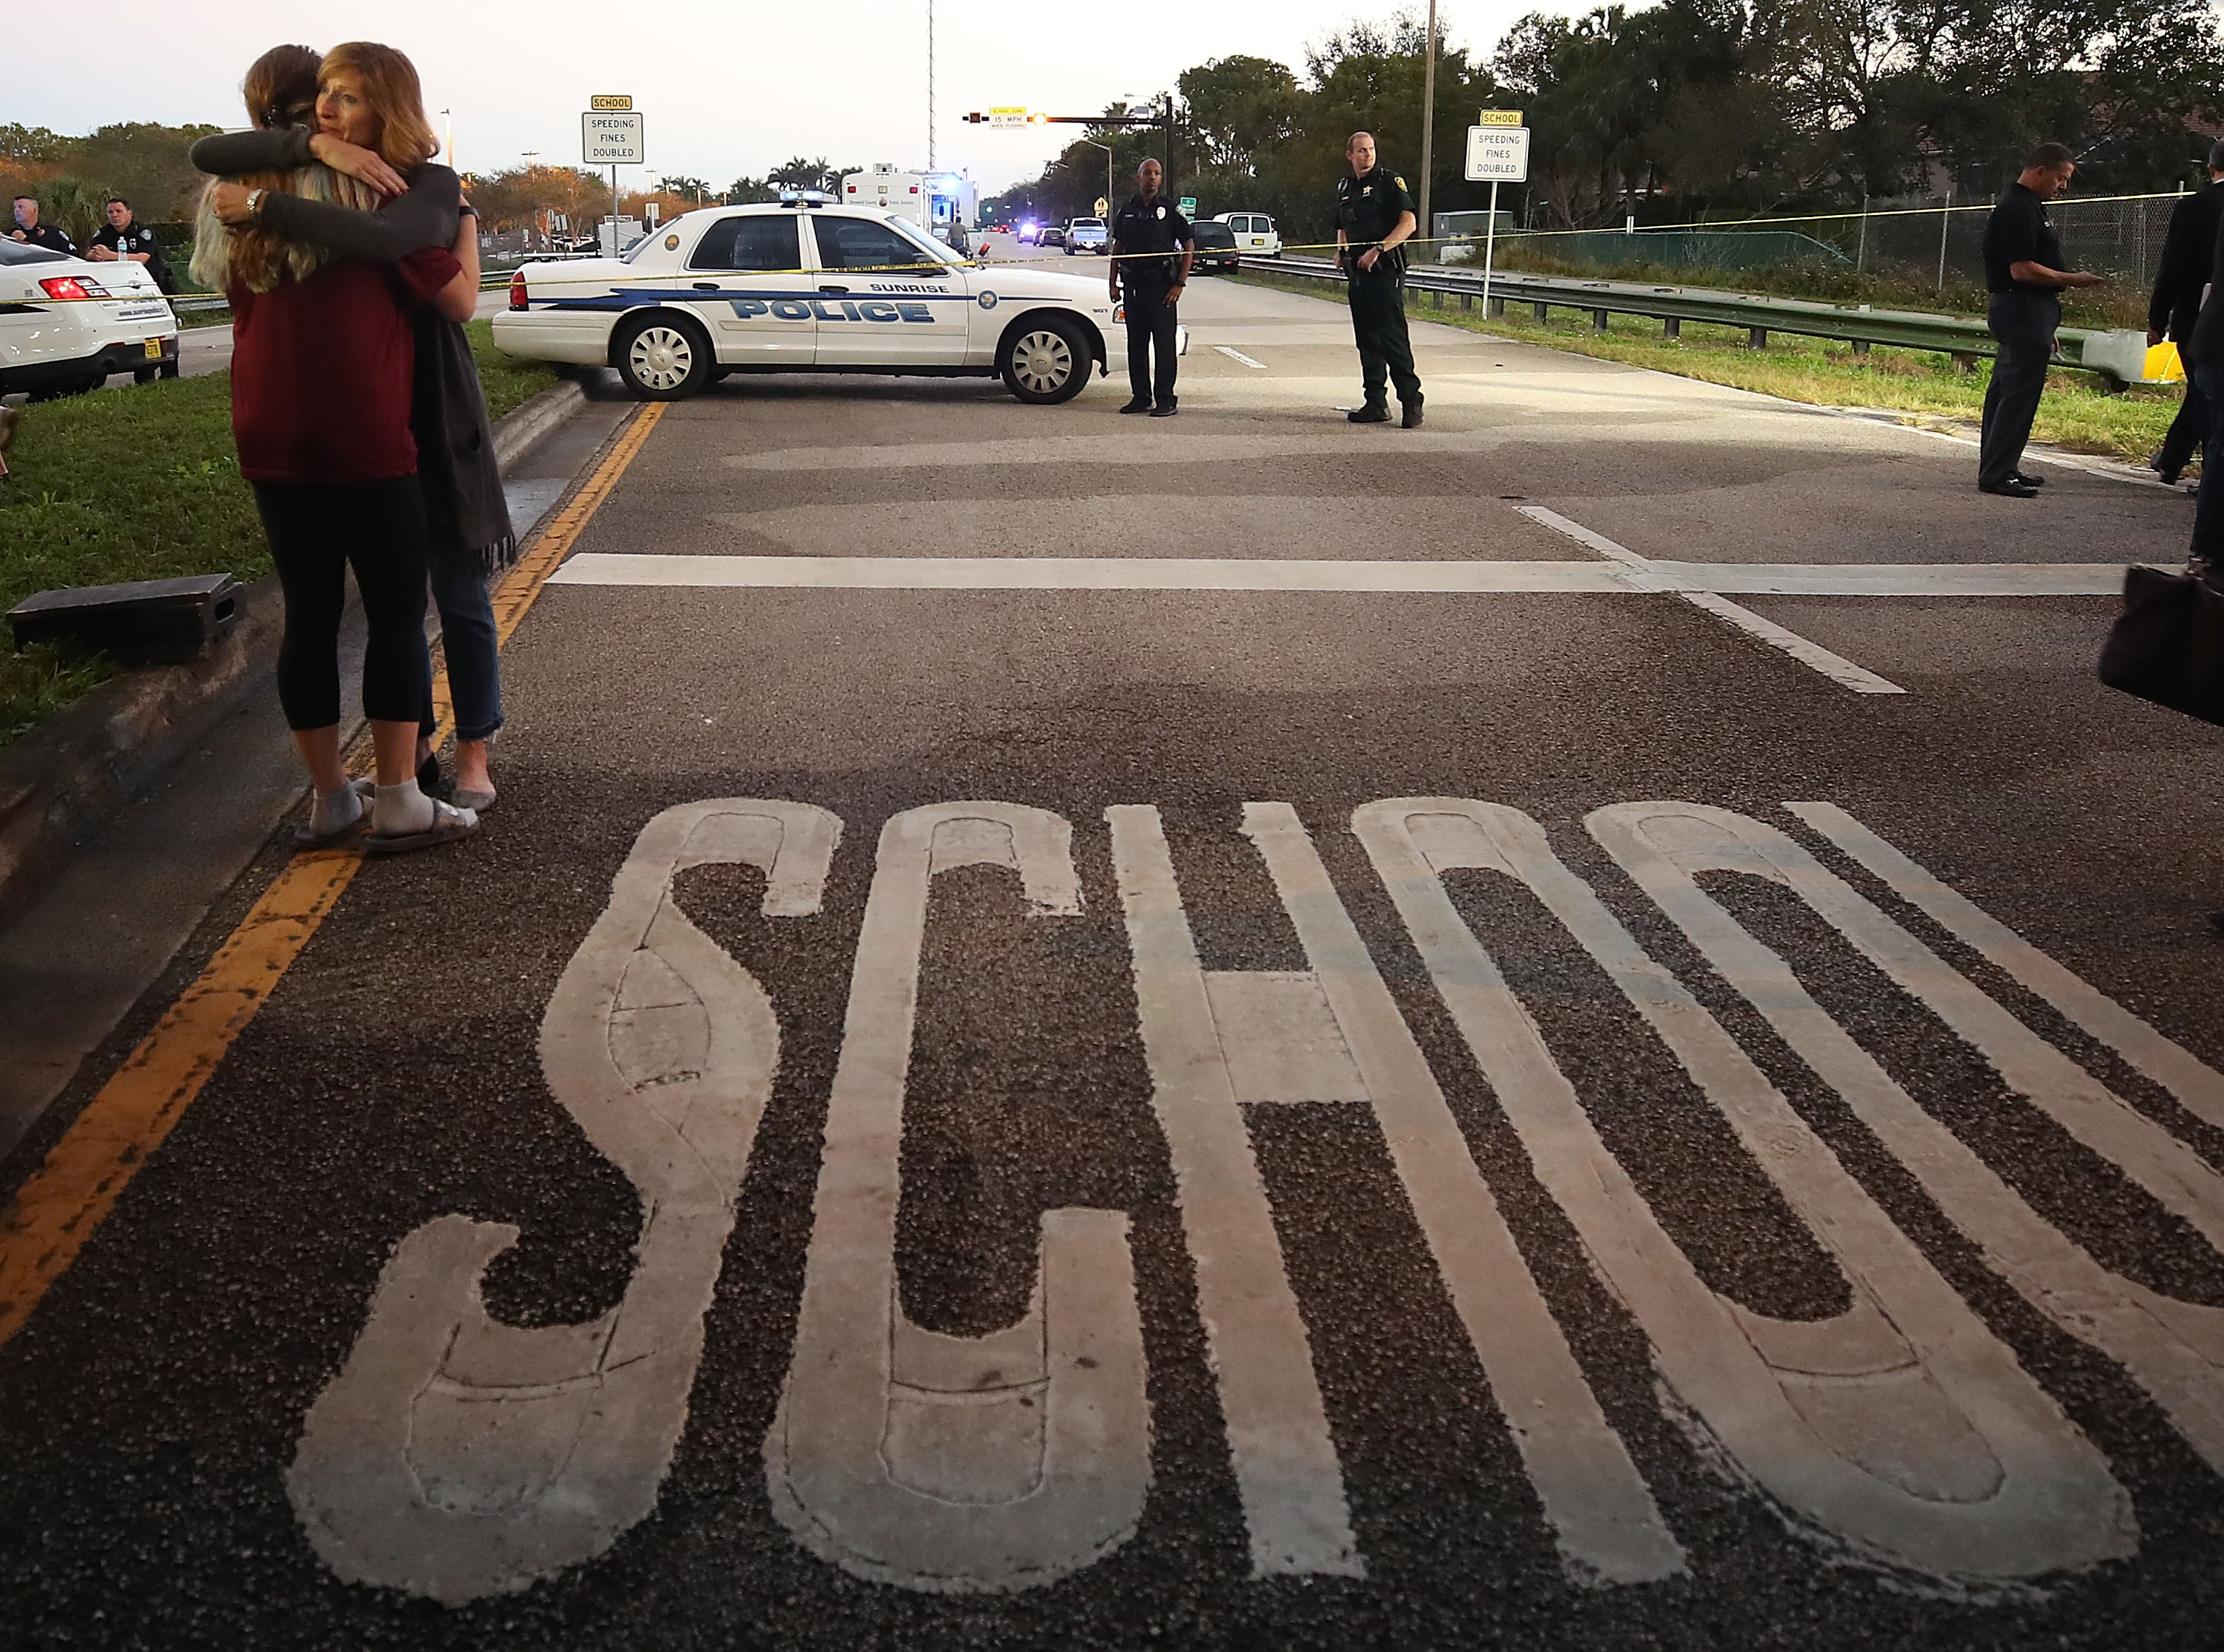 Marjory Stoneman Douglas High School, Parkland, Florida